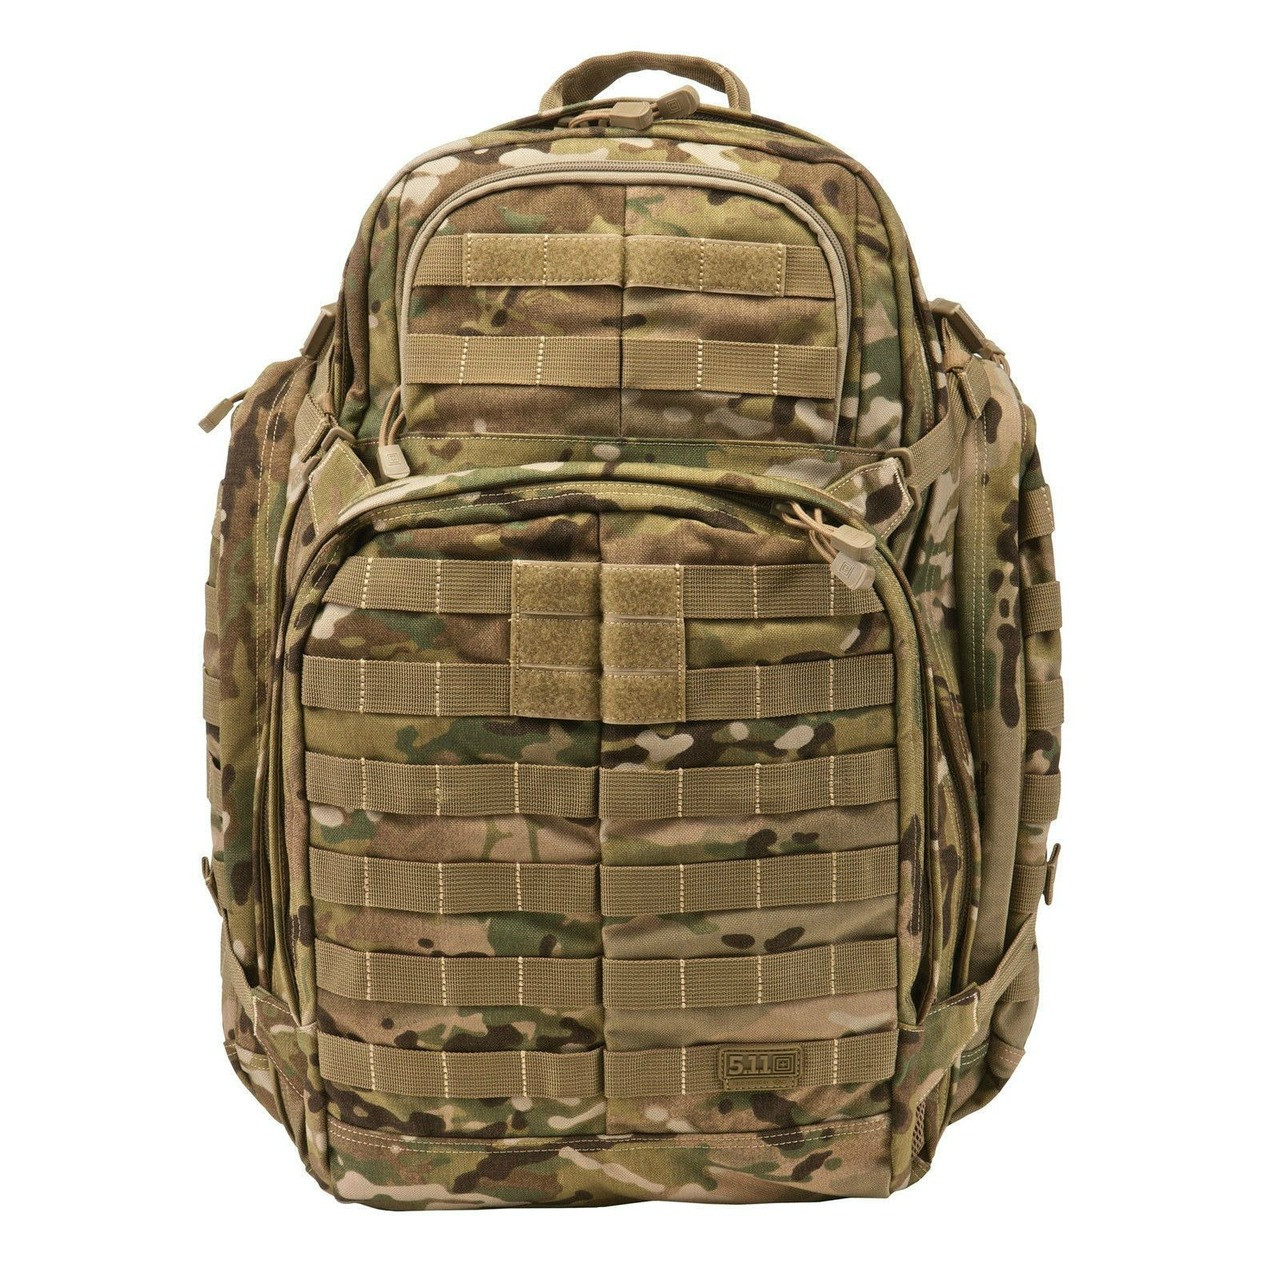 5.11 TACTICAL RUSH 72 LX BACKPACK 56956 / MULTICAM 169